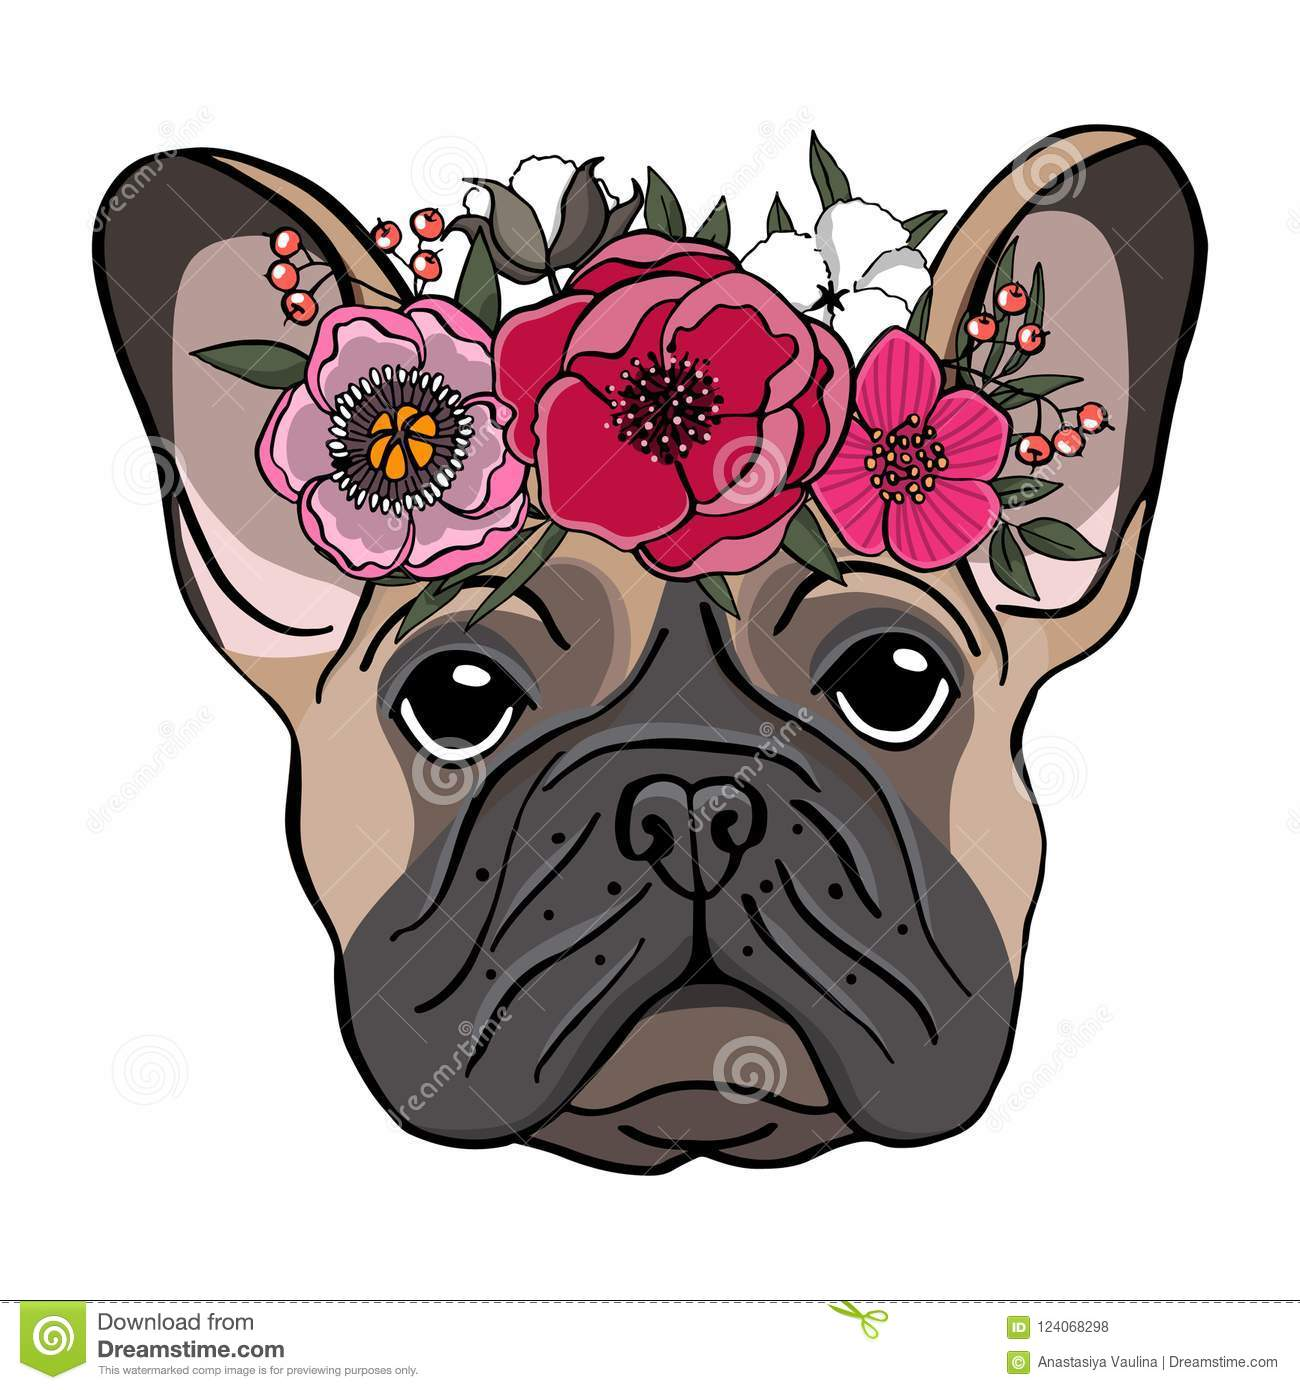 Hand drawn portrait of a french bulldog with wreath of flowers.